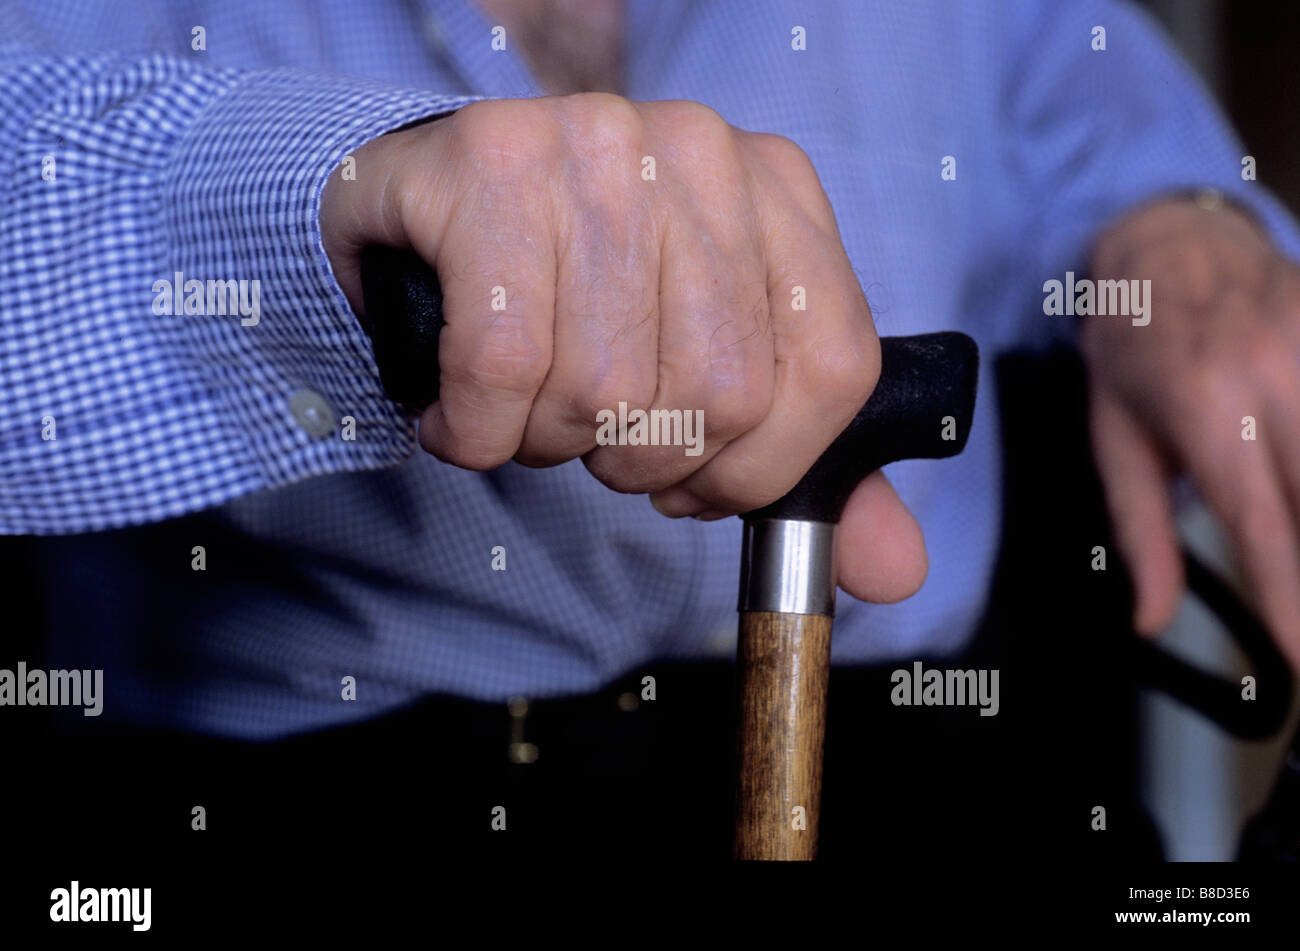 Seated Elderly Man Holding a Cane - Stock Image